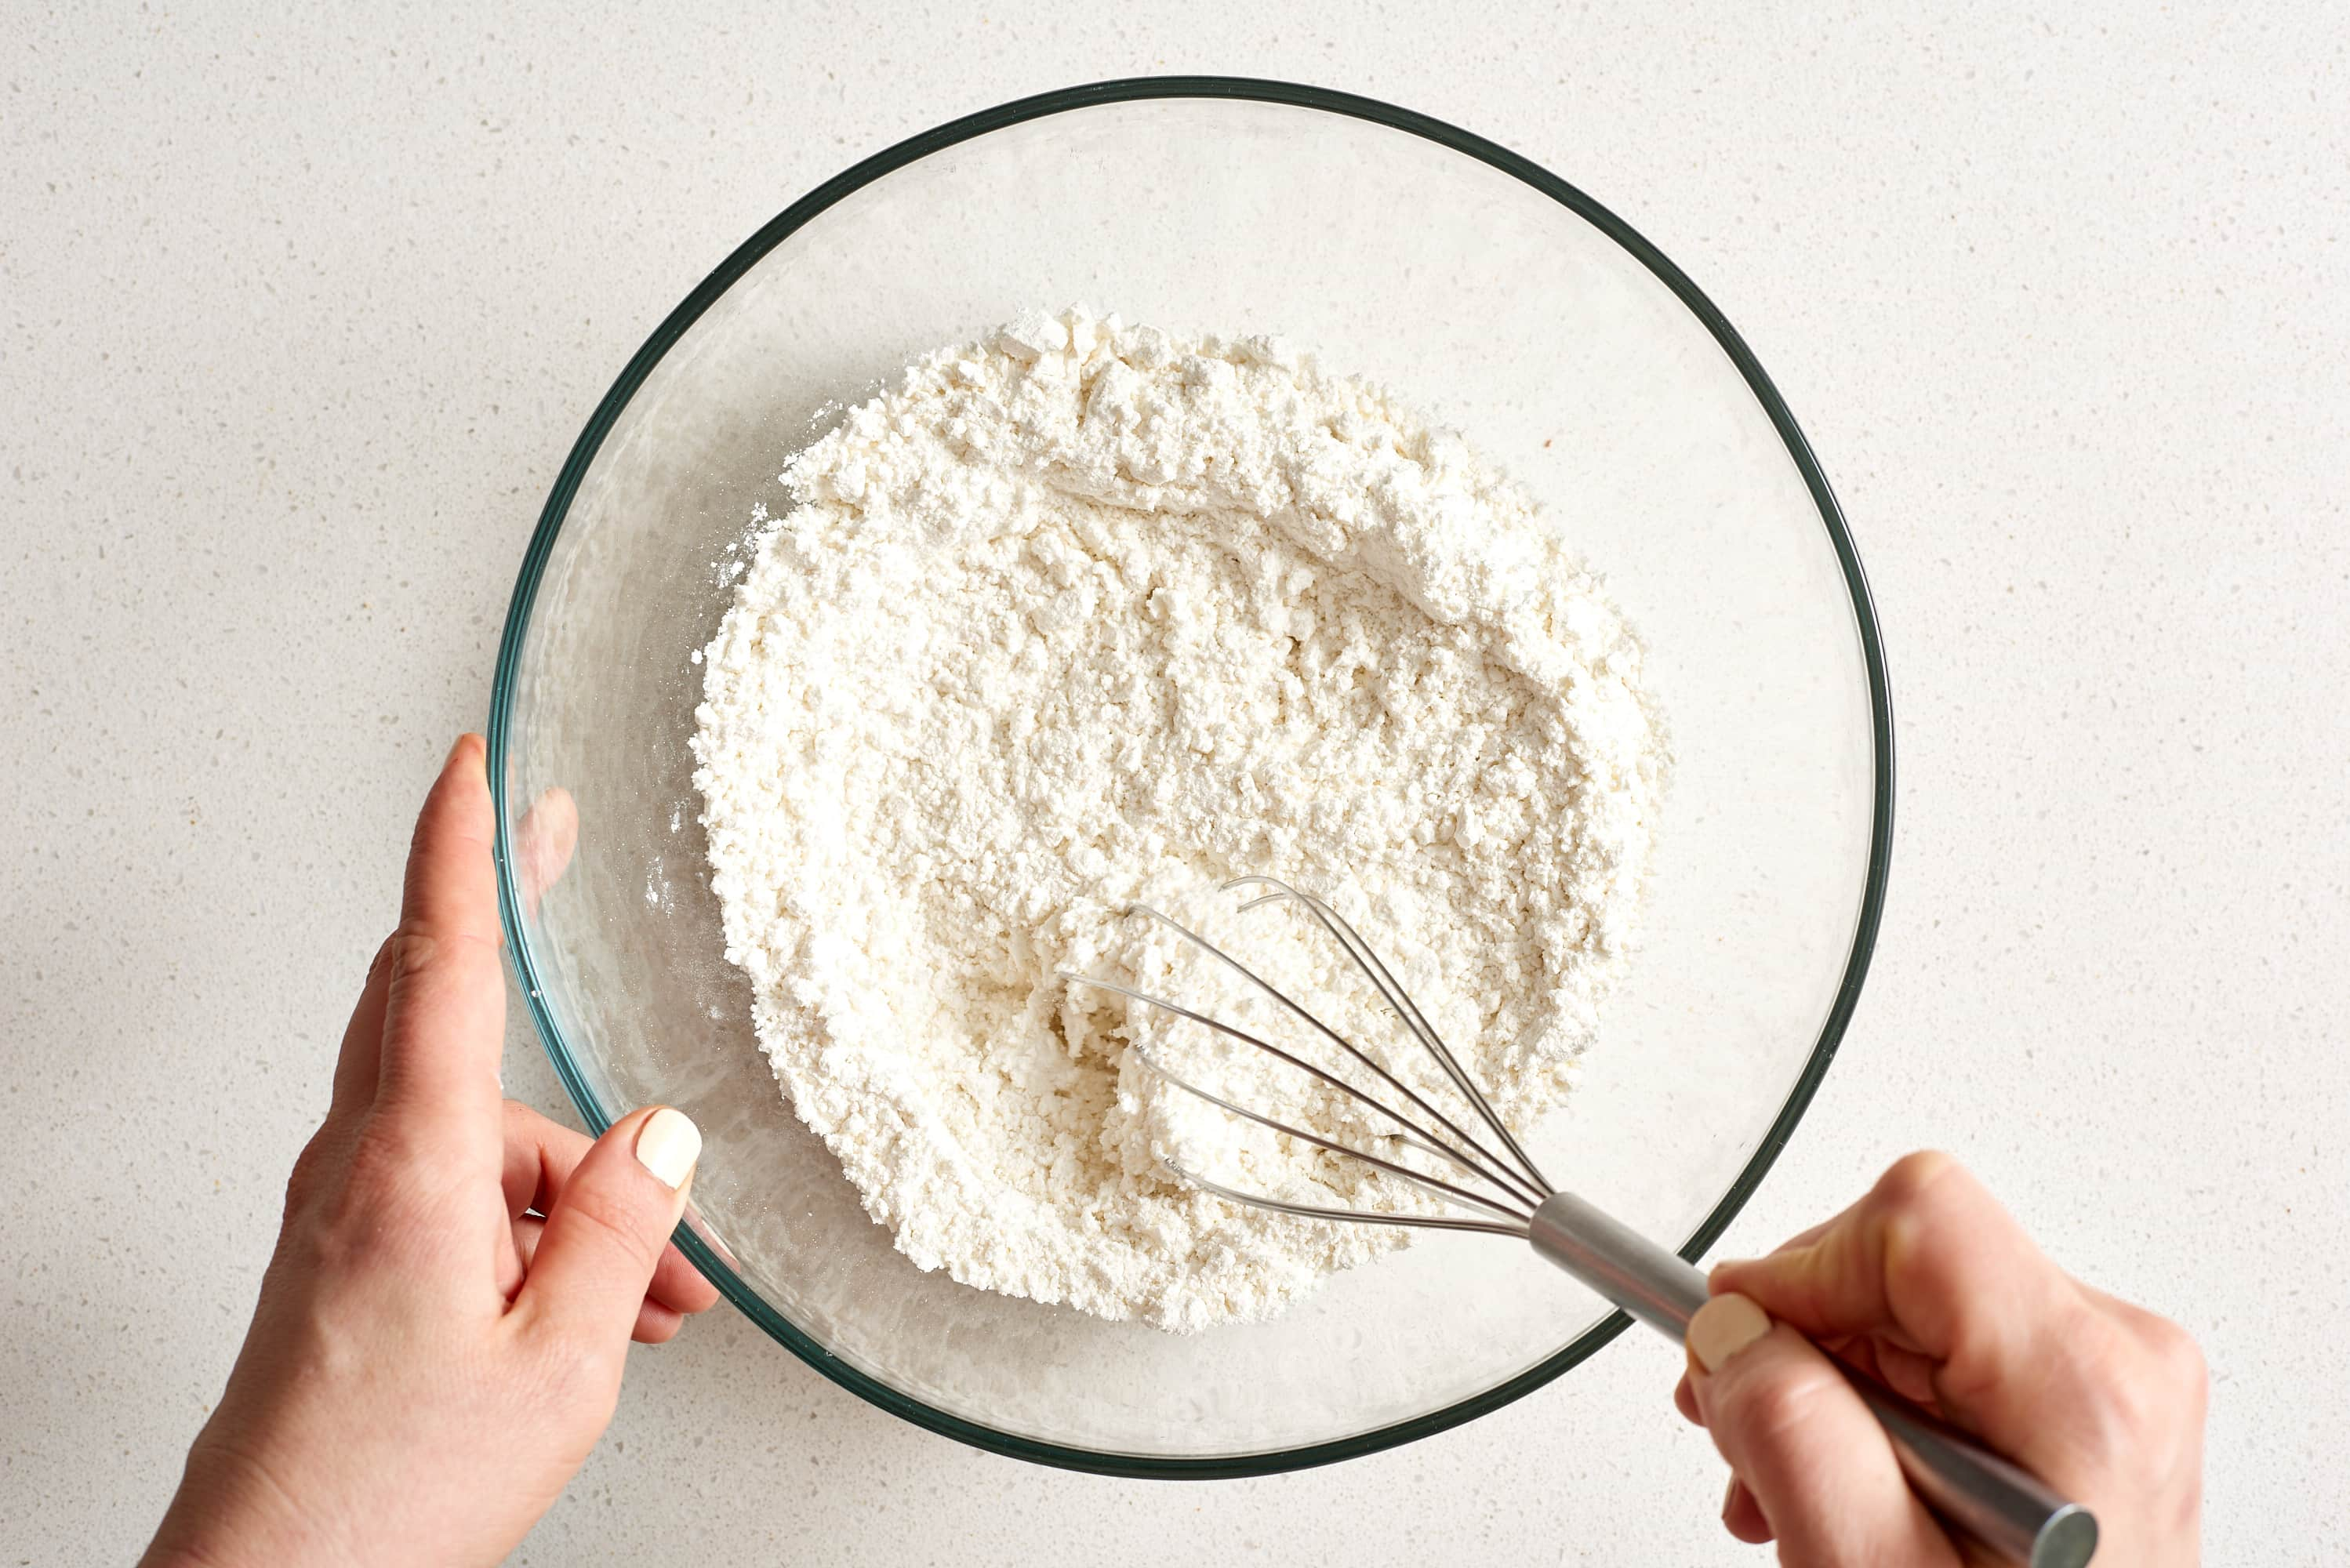 How To Make Gluten-Free Pizza Dough